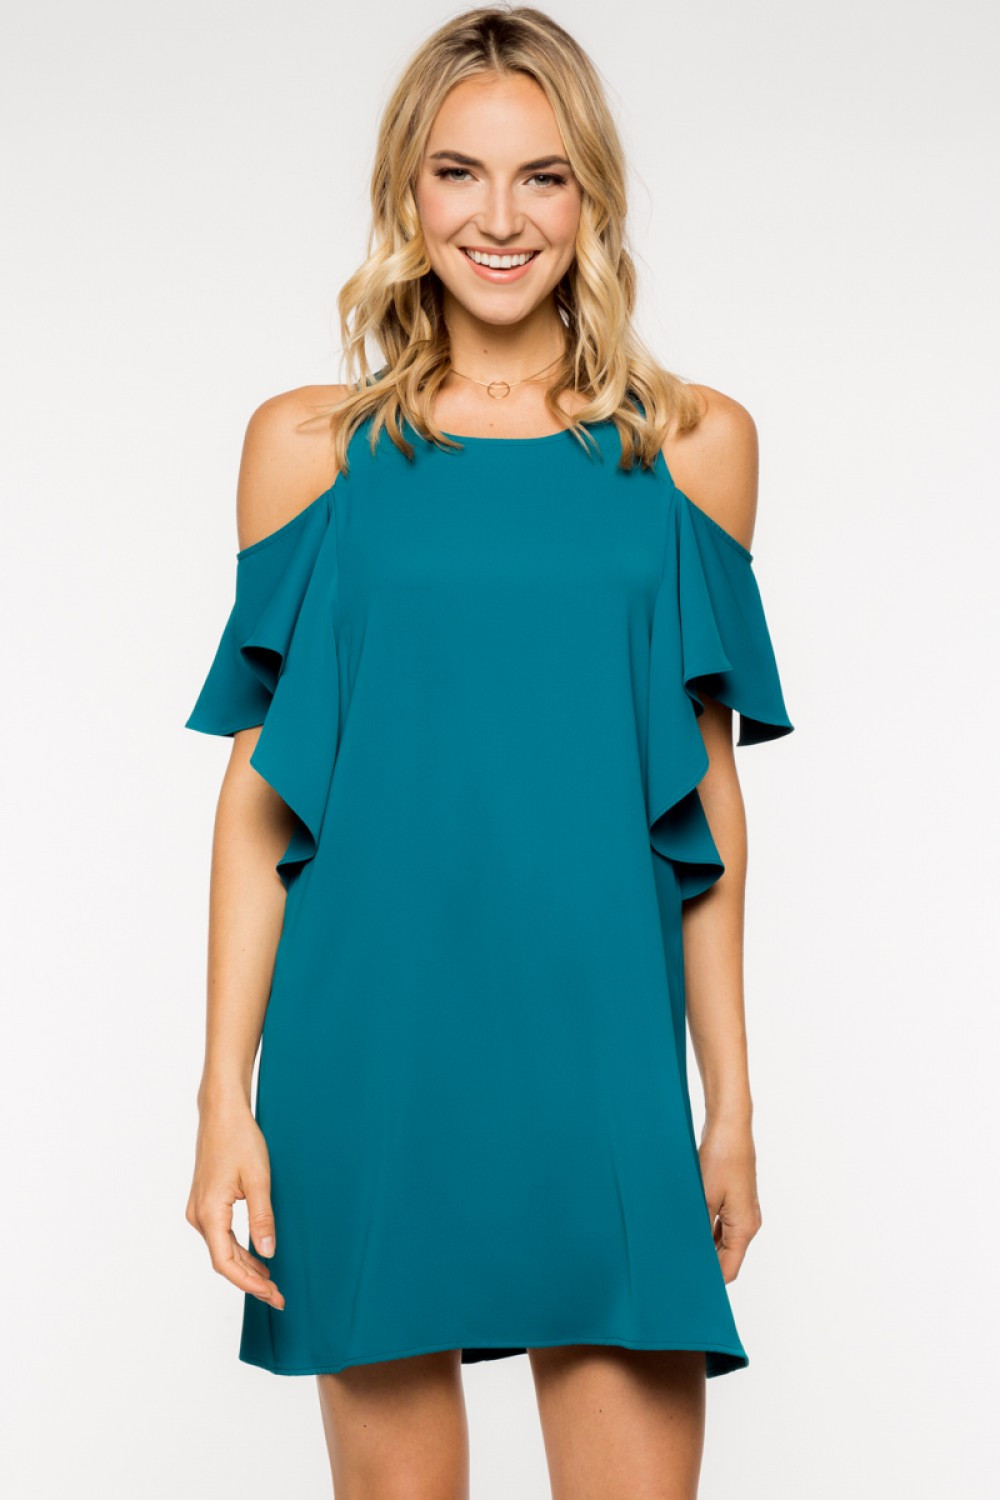 Off the Shoulder Ruffled Shift Dress - Teal